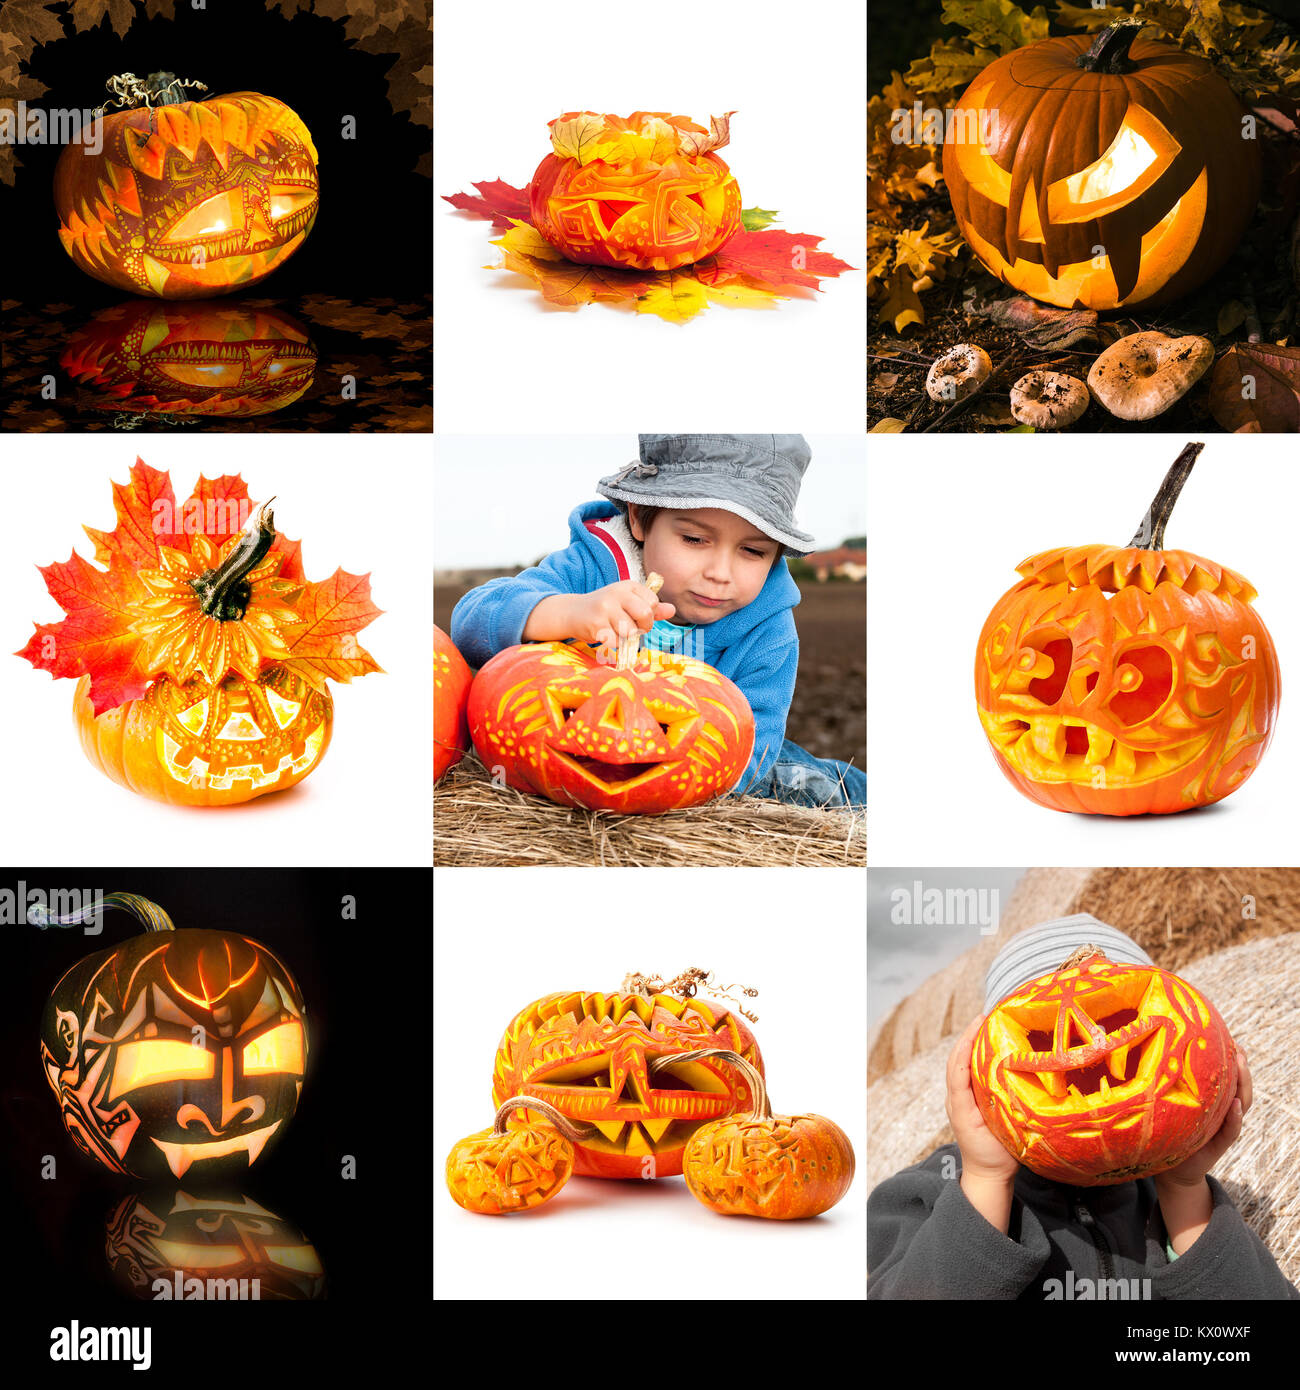 Halloween pumpkins in and out of context, collage - Stock Image